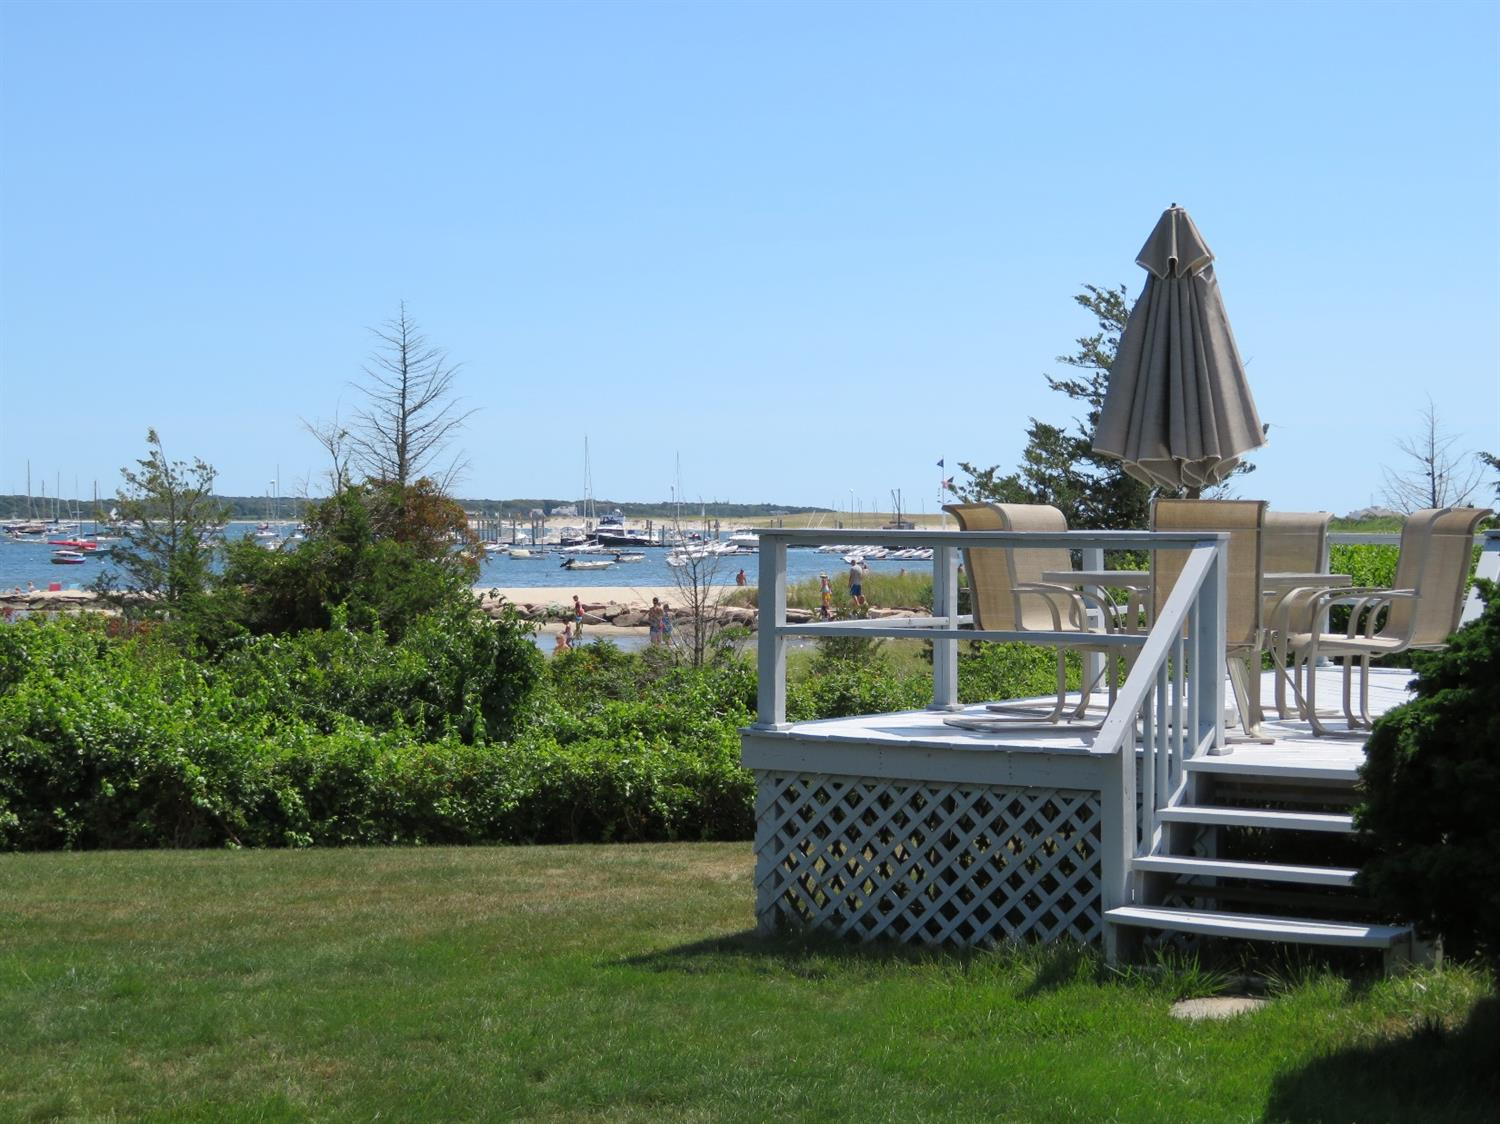 middle eastern singles in west boothbay harbor Dogfriendlycom® since 1998 has published world-wide pet travel guides for people with dogs of all sizes & breeds city guides show pet-friendly hotels.